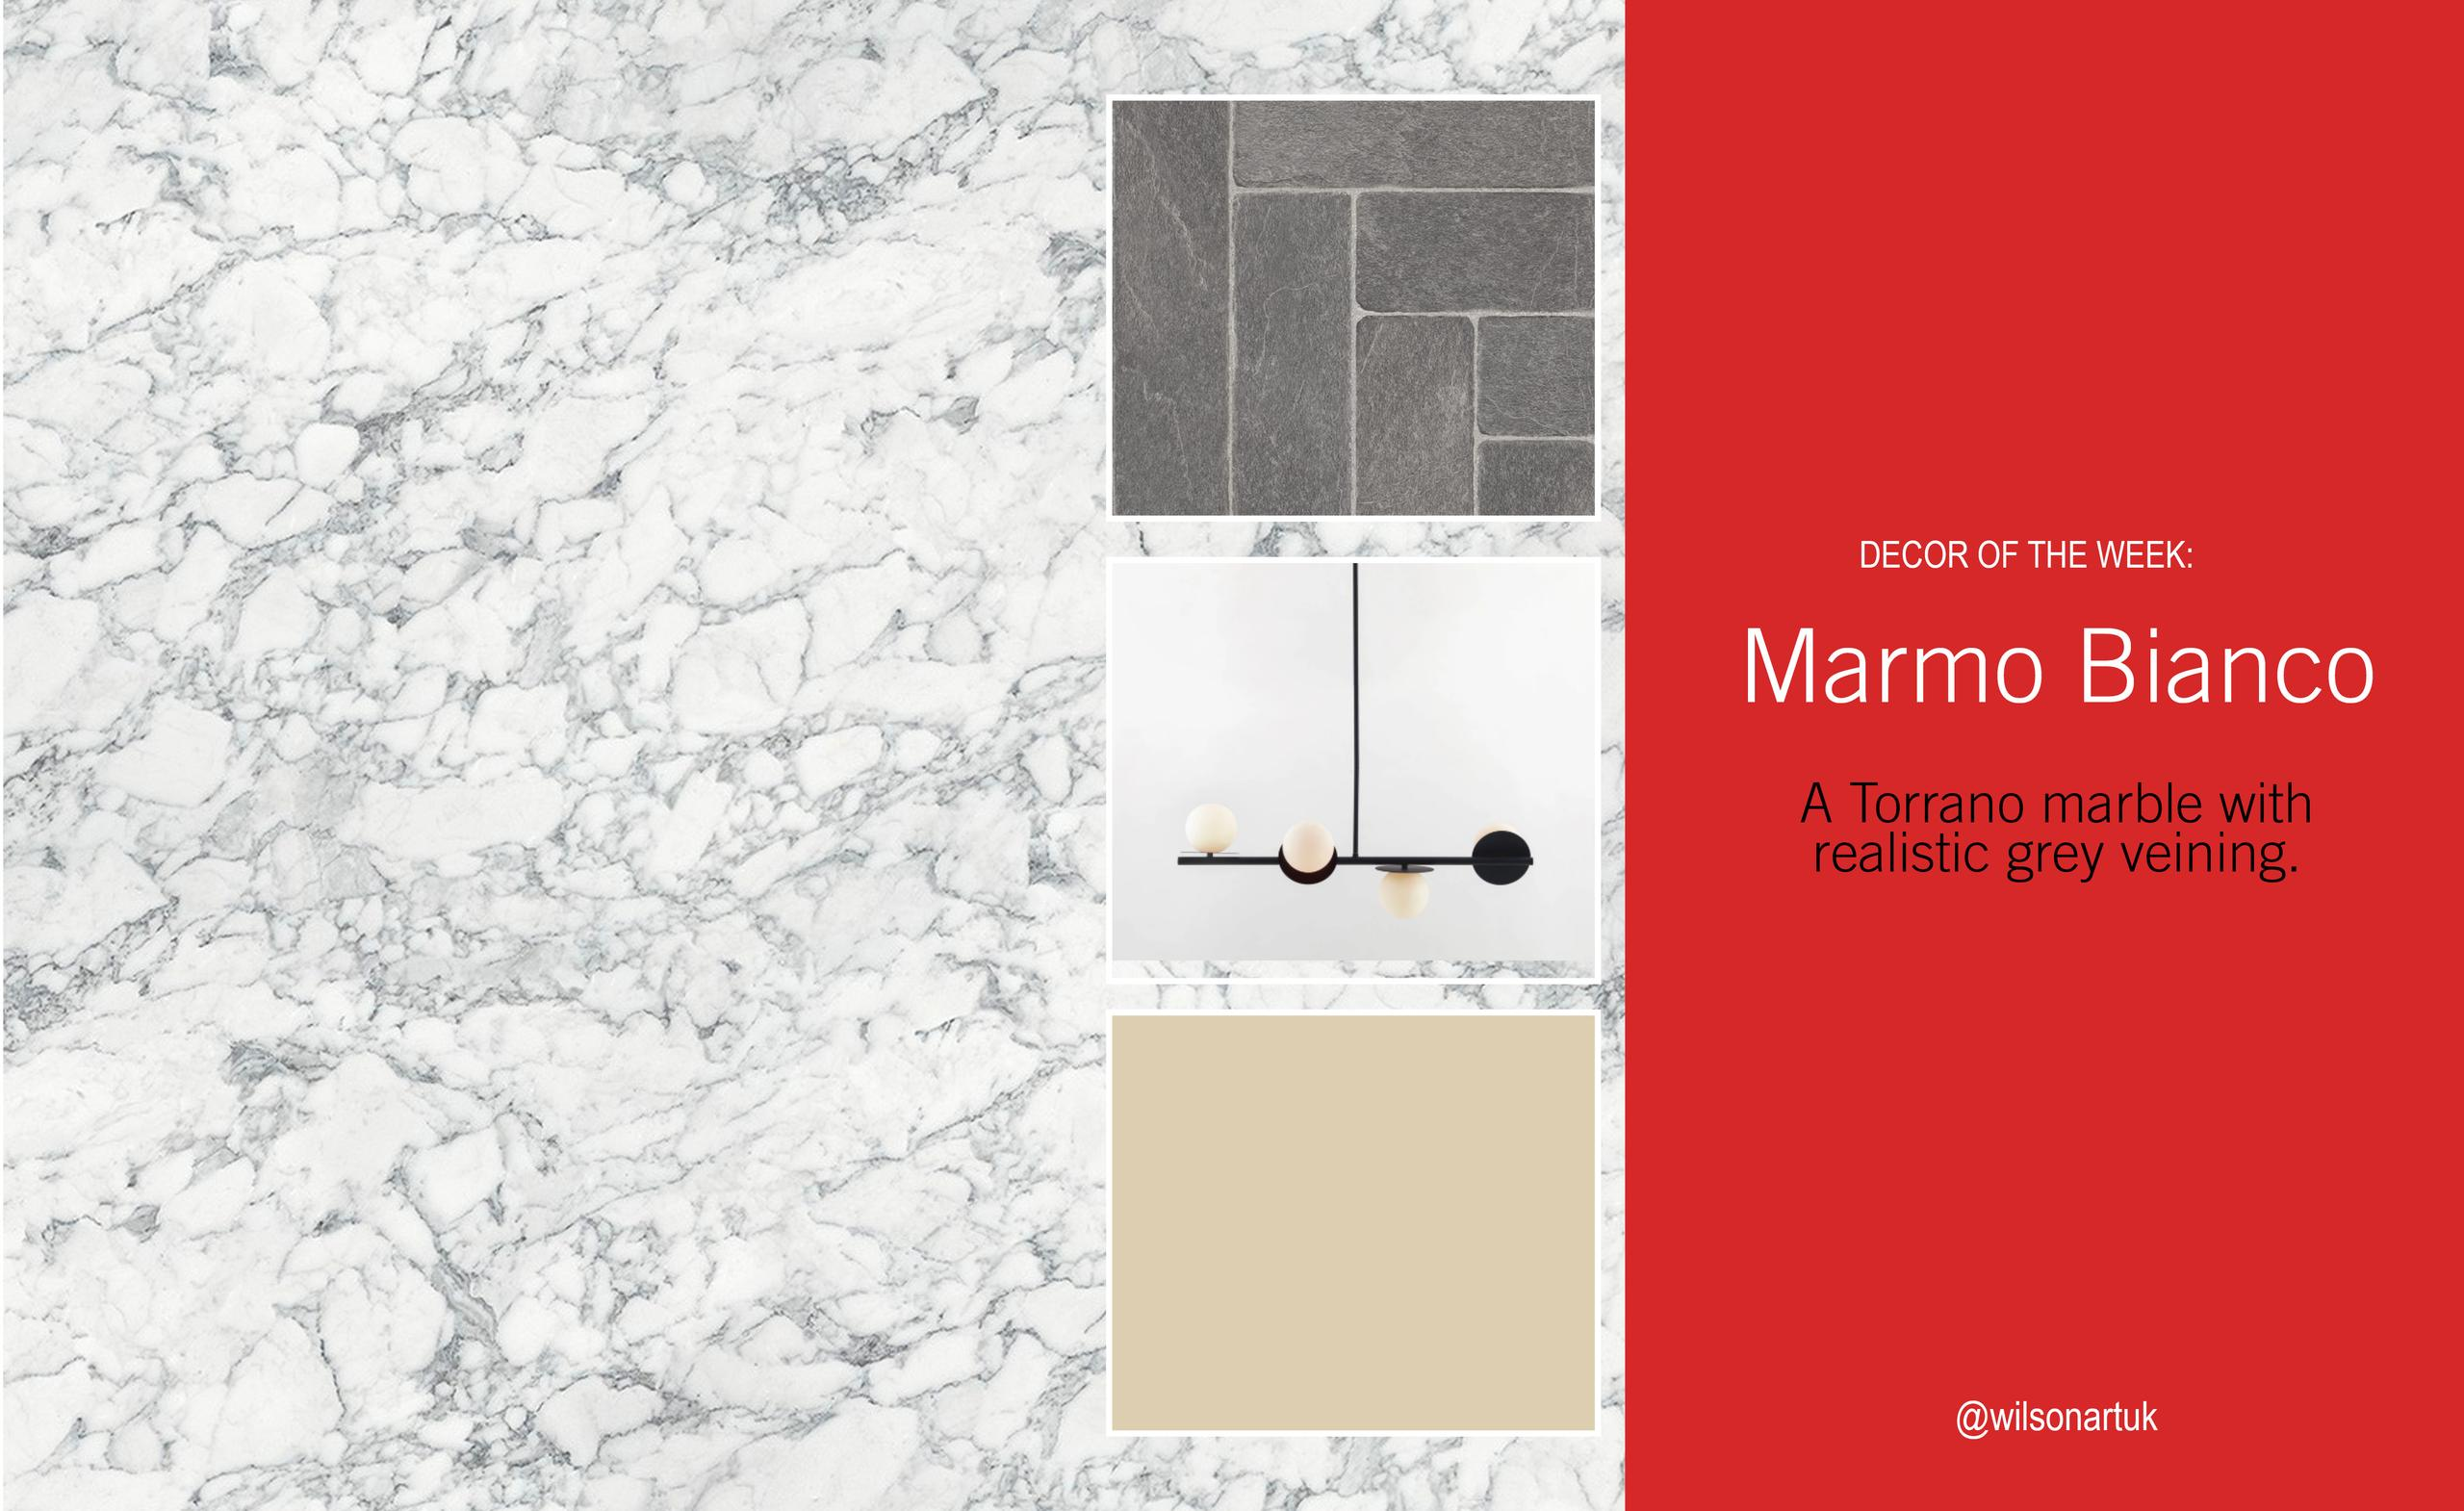 Decor of the Week: Marmo Bianco